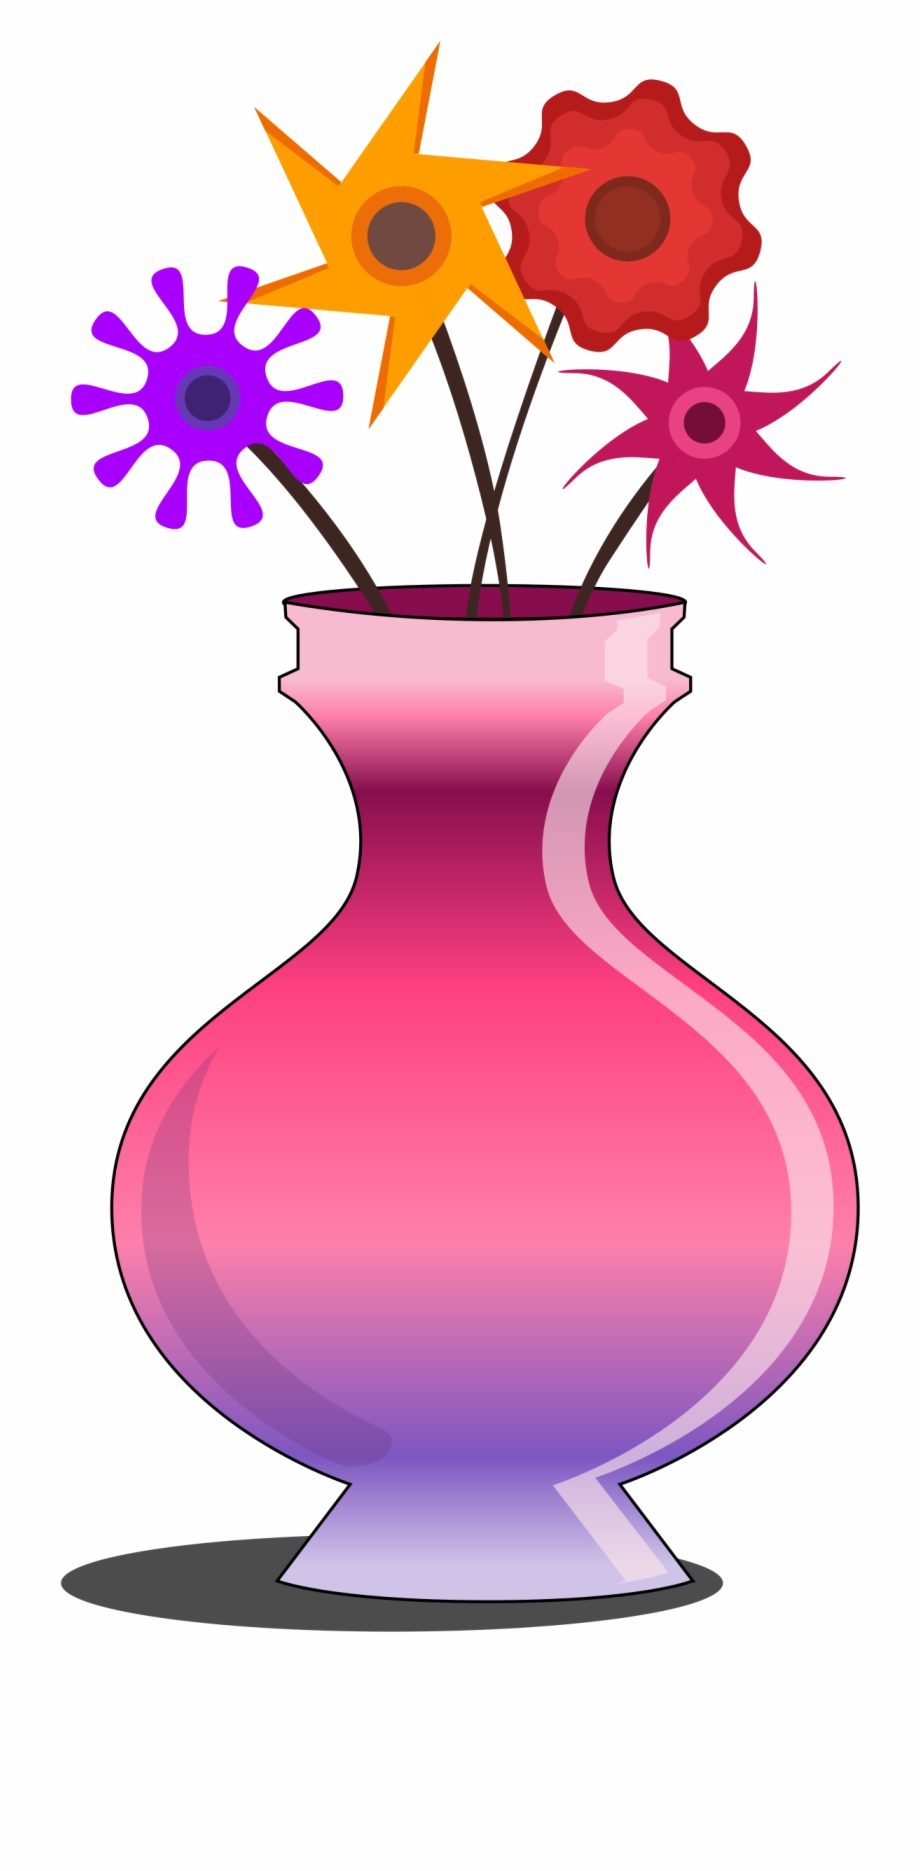 Vases with flowers clipart clip transparent stock This Free Icons Png Design Of Flower Vase Pink With - Flower ... clip transparent stock